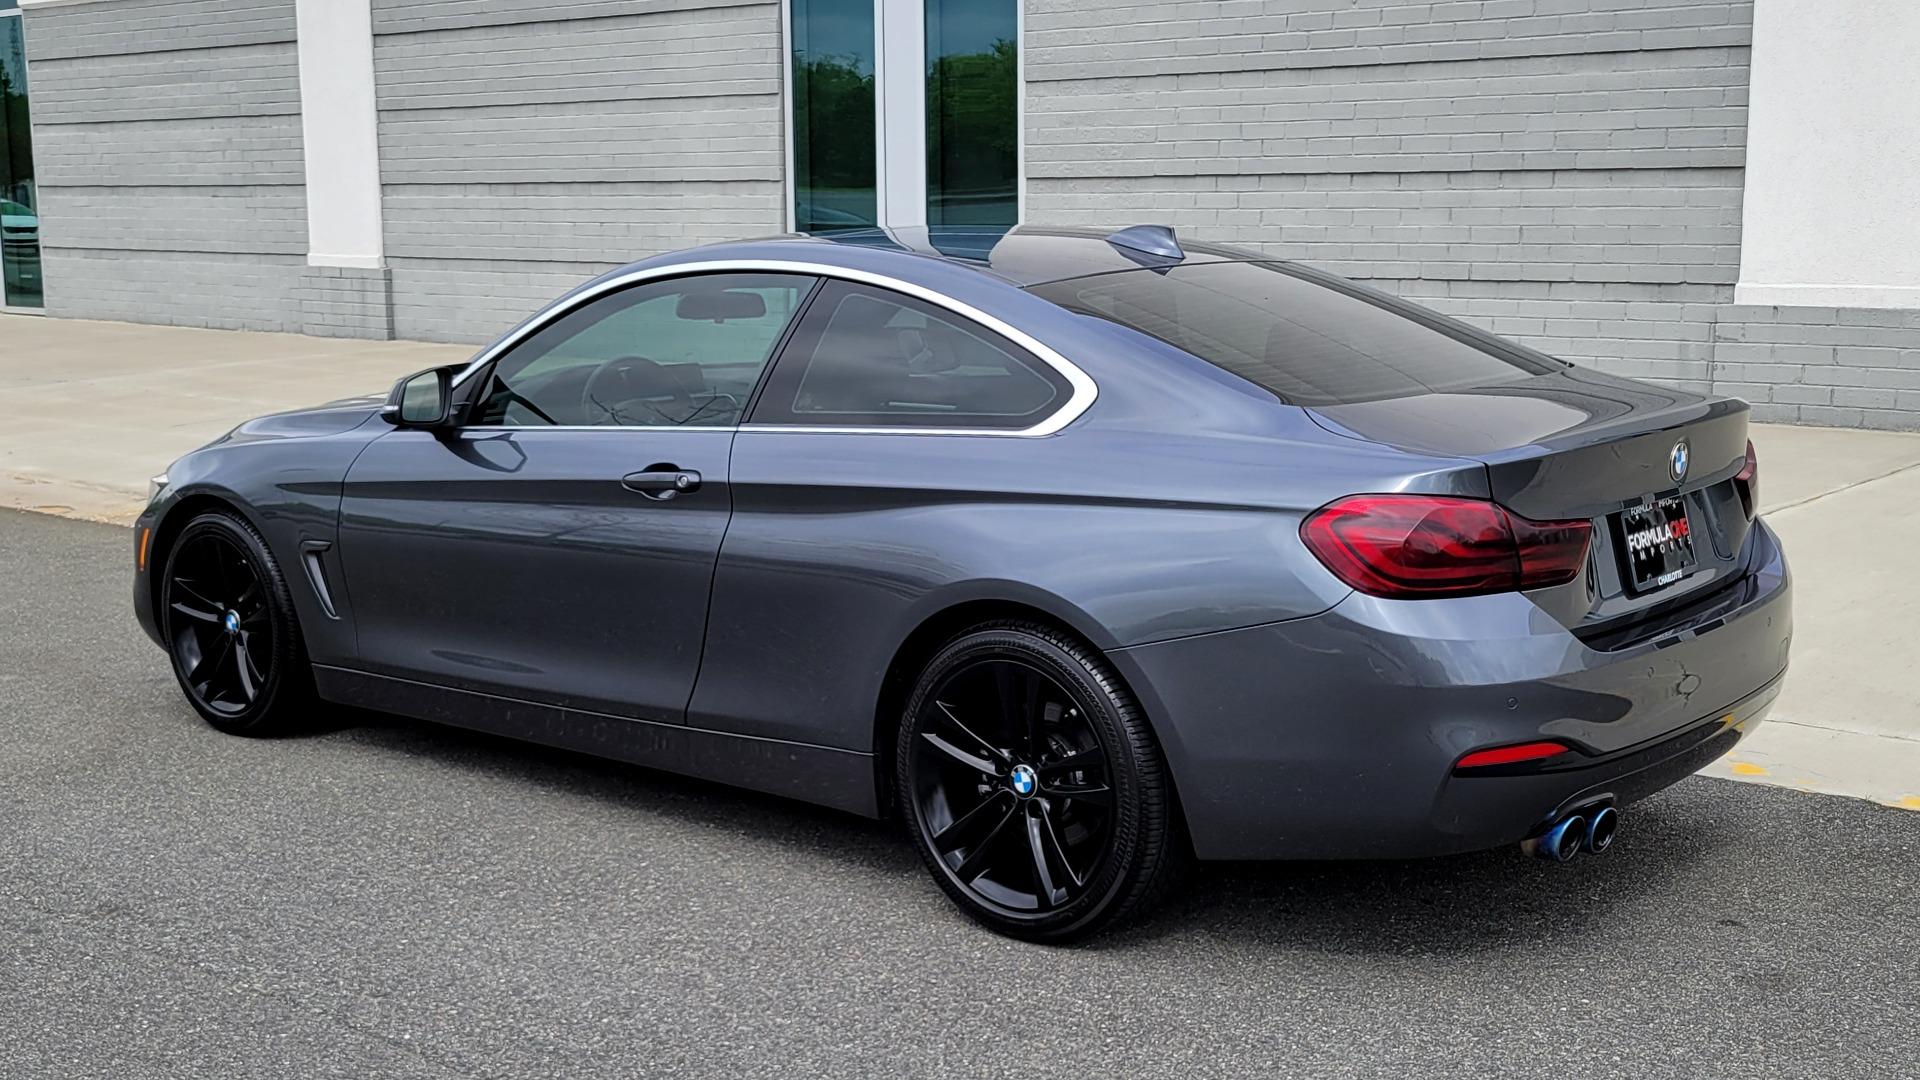 Used 2019 BMW 4 SERIES 430I COUPE 2.0L / RWD / DRVR ASST / CONV PKG / SUNROOF / REARVIEW for sale $32,295 at Formula Imports in Charlotte NC 28227 4